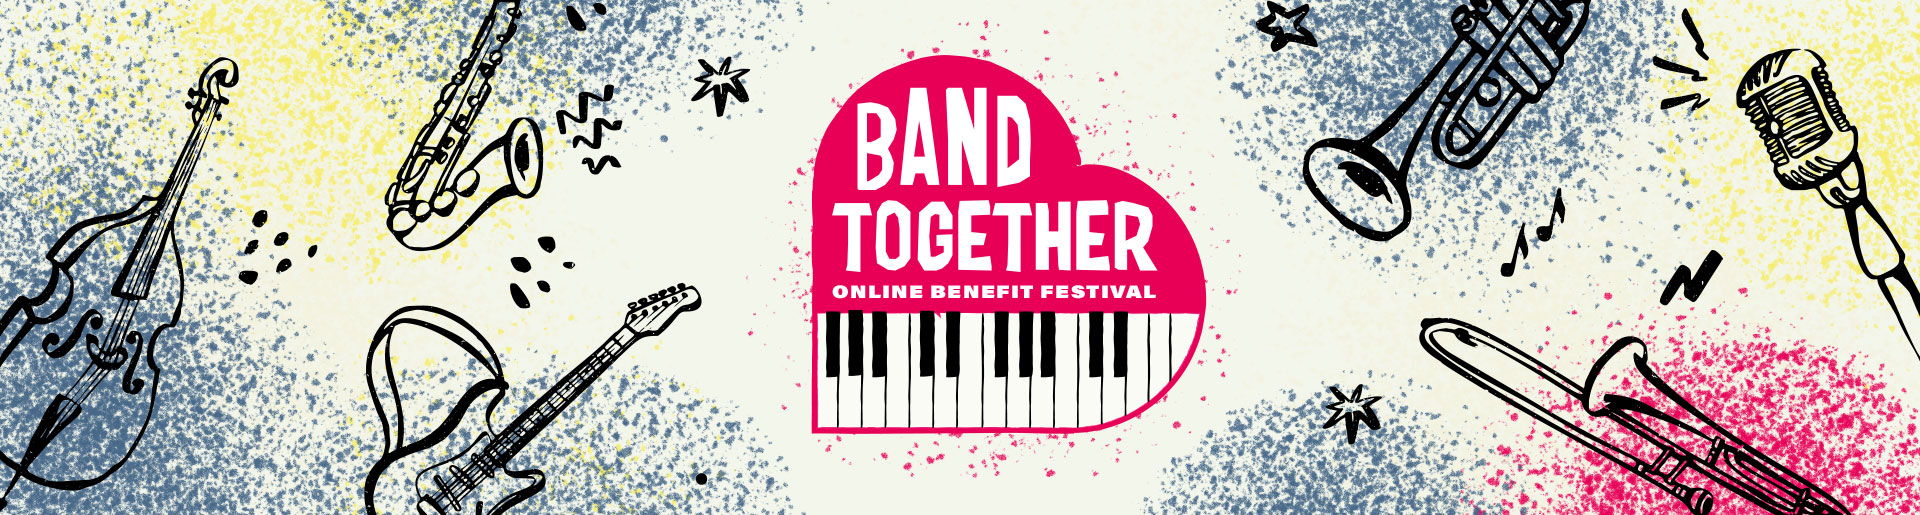 Band Together - Online Benefit Festival